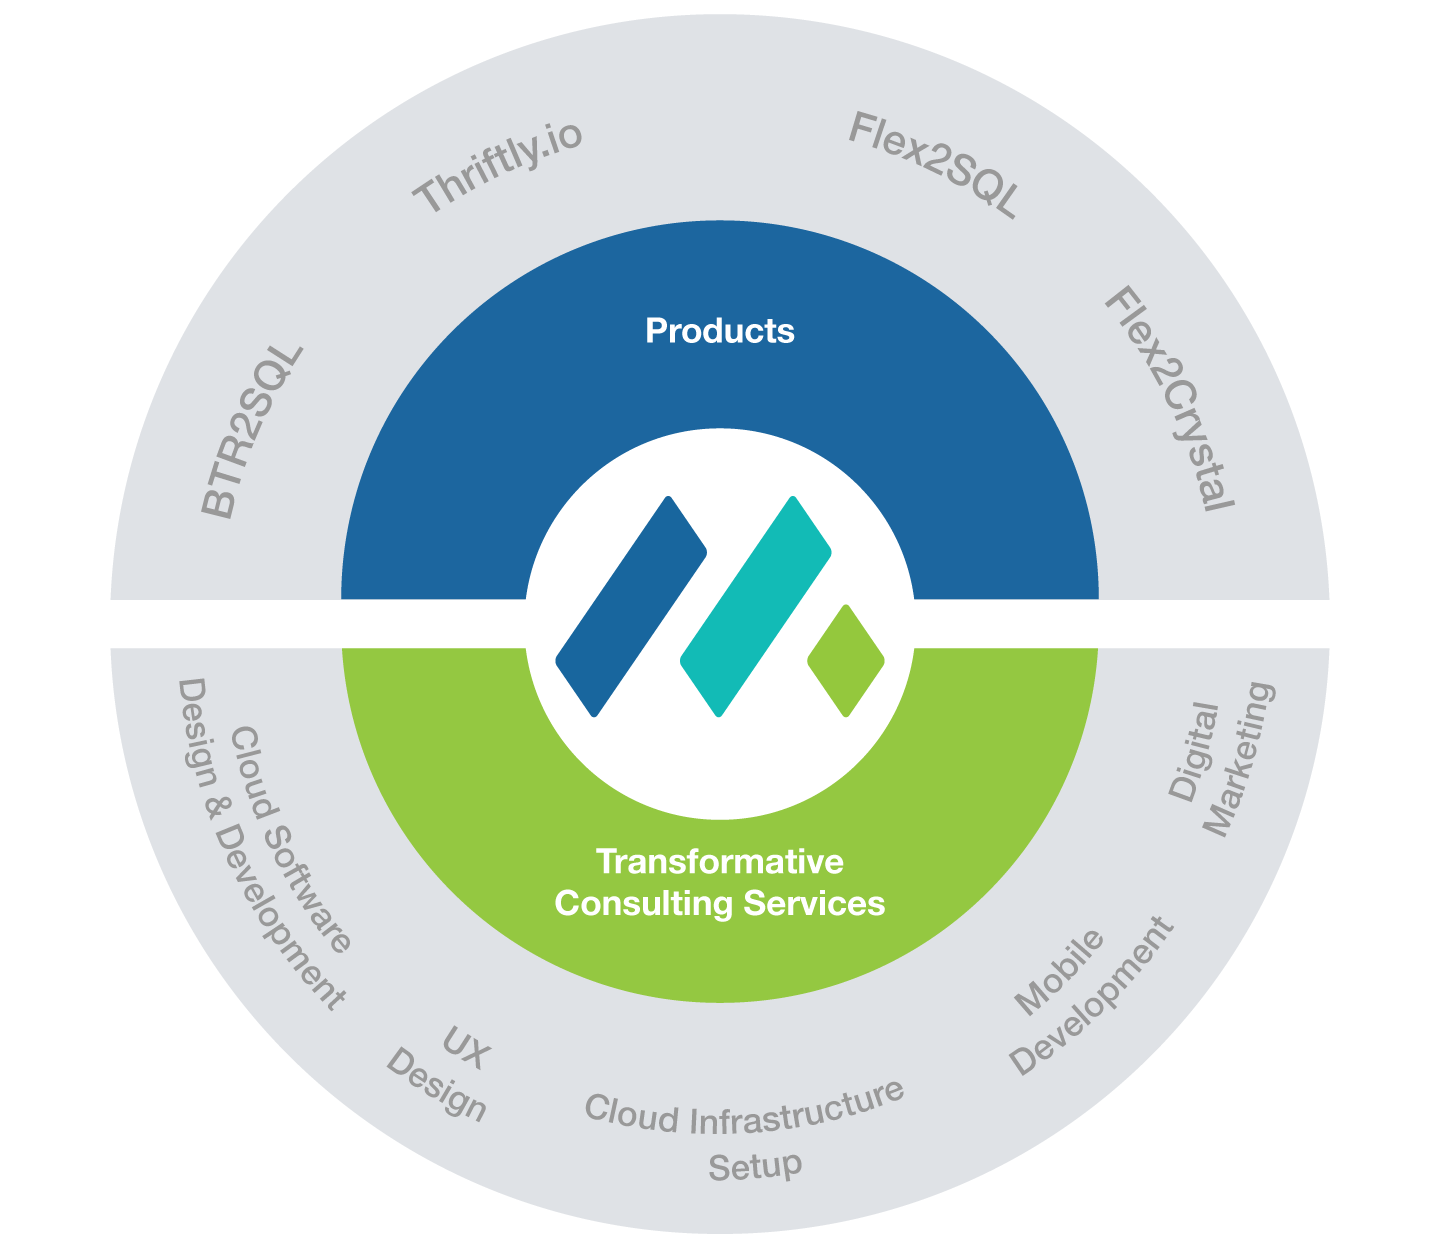 Mertech Products and Services Diagram